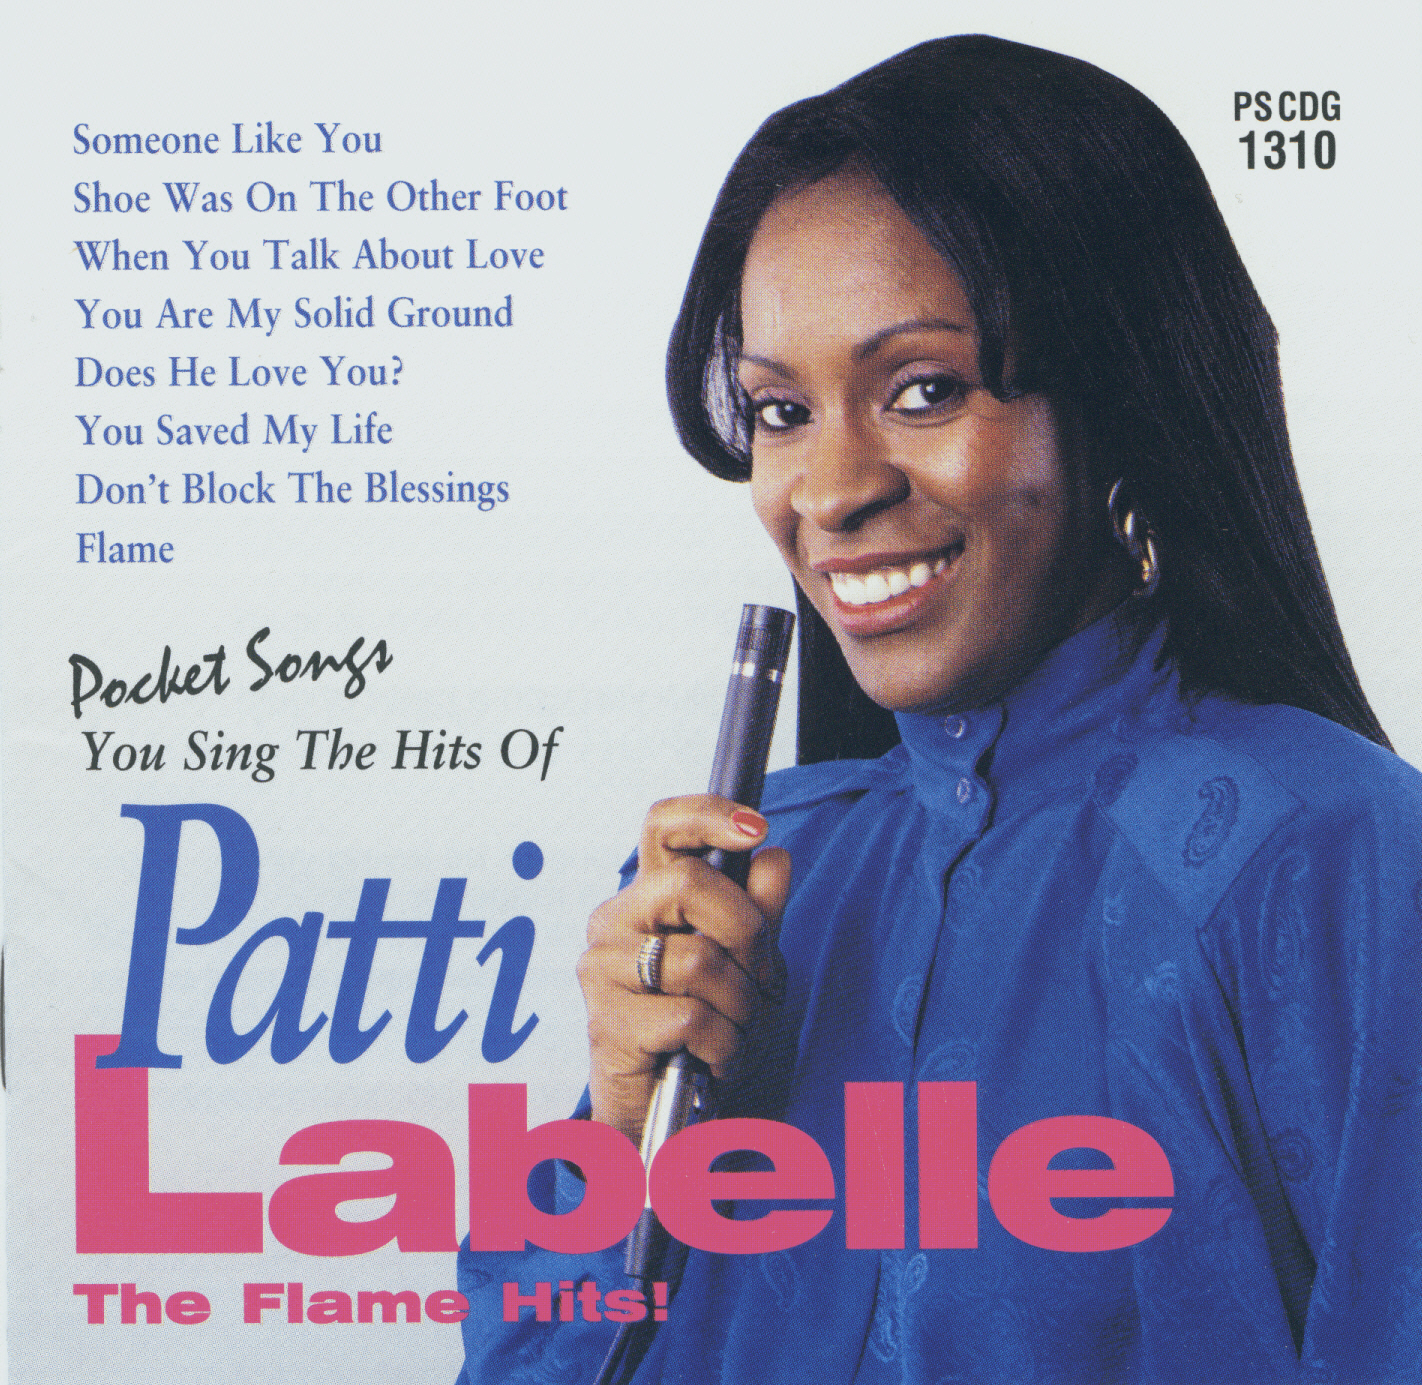 PATTI LABELLE              Pocket Songs        PS 1310